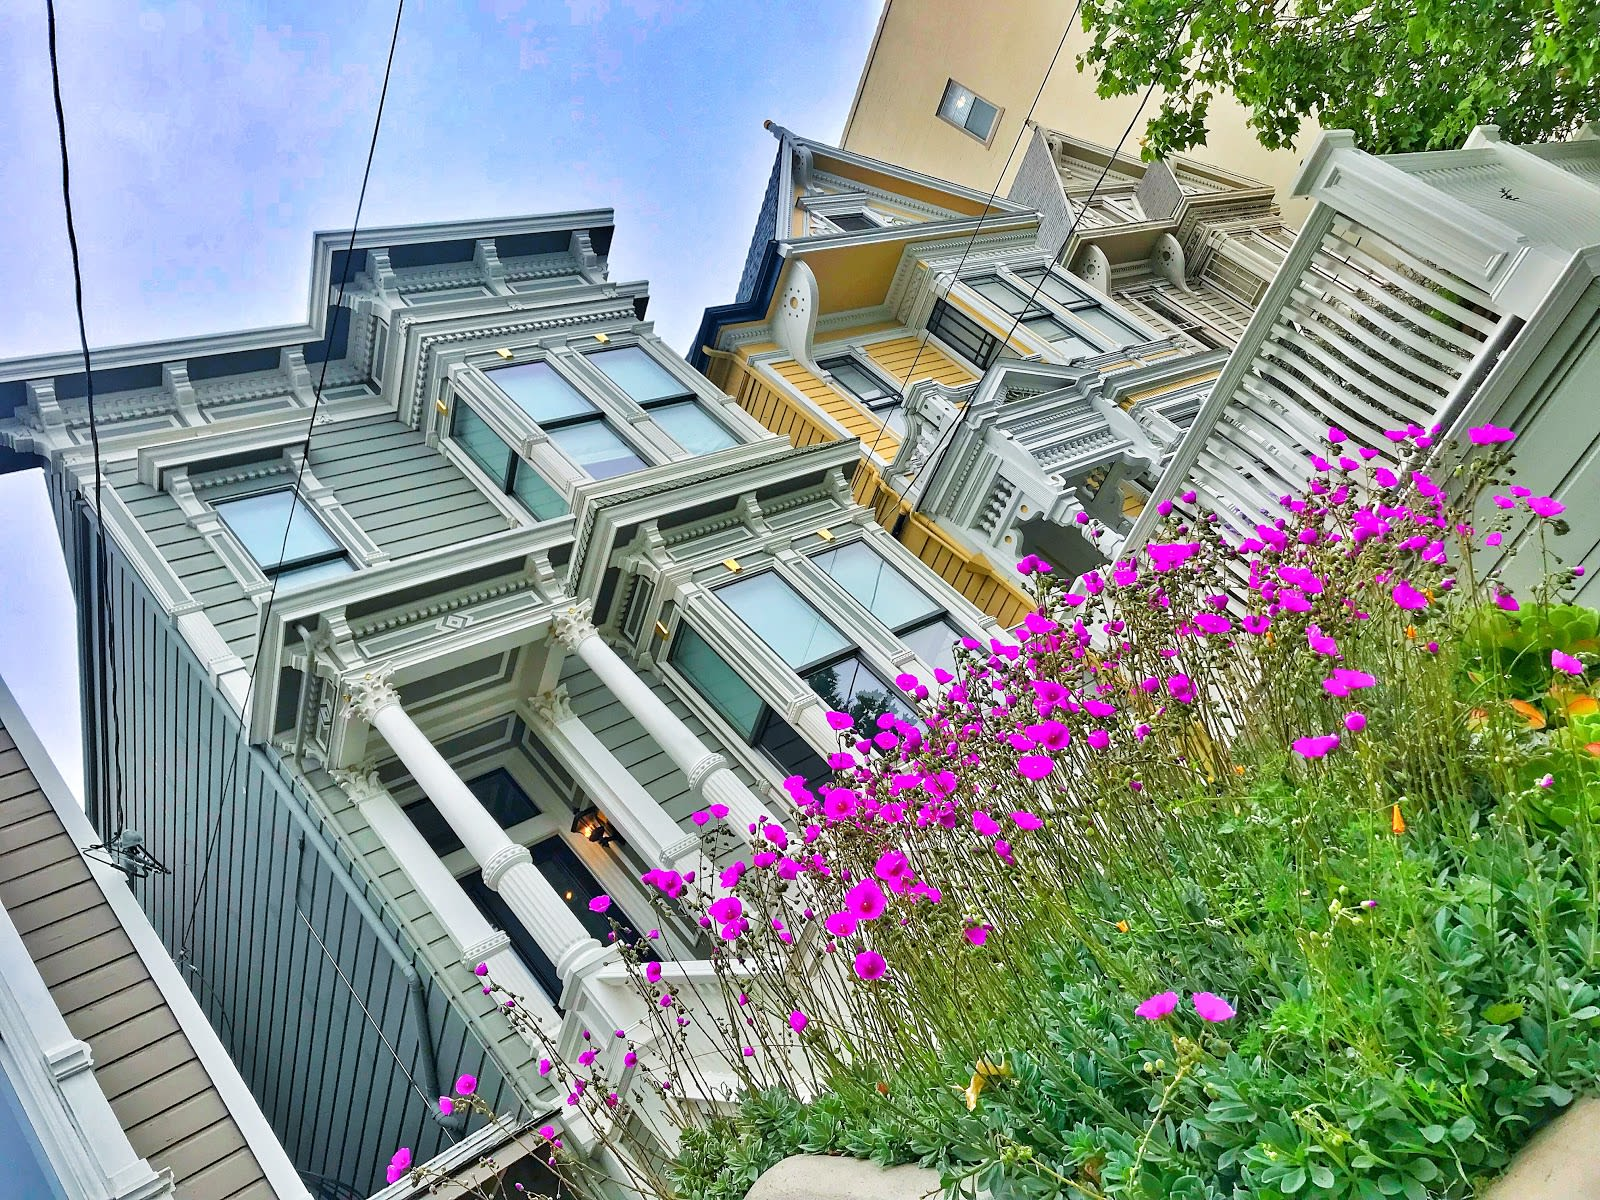 Thinking About Purchasing A Historic Home In D.C.? Consider This First